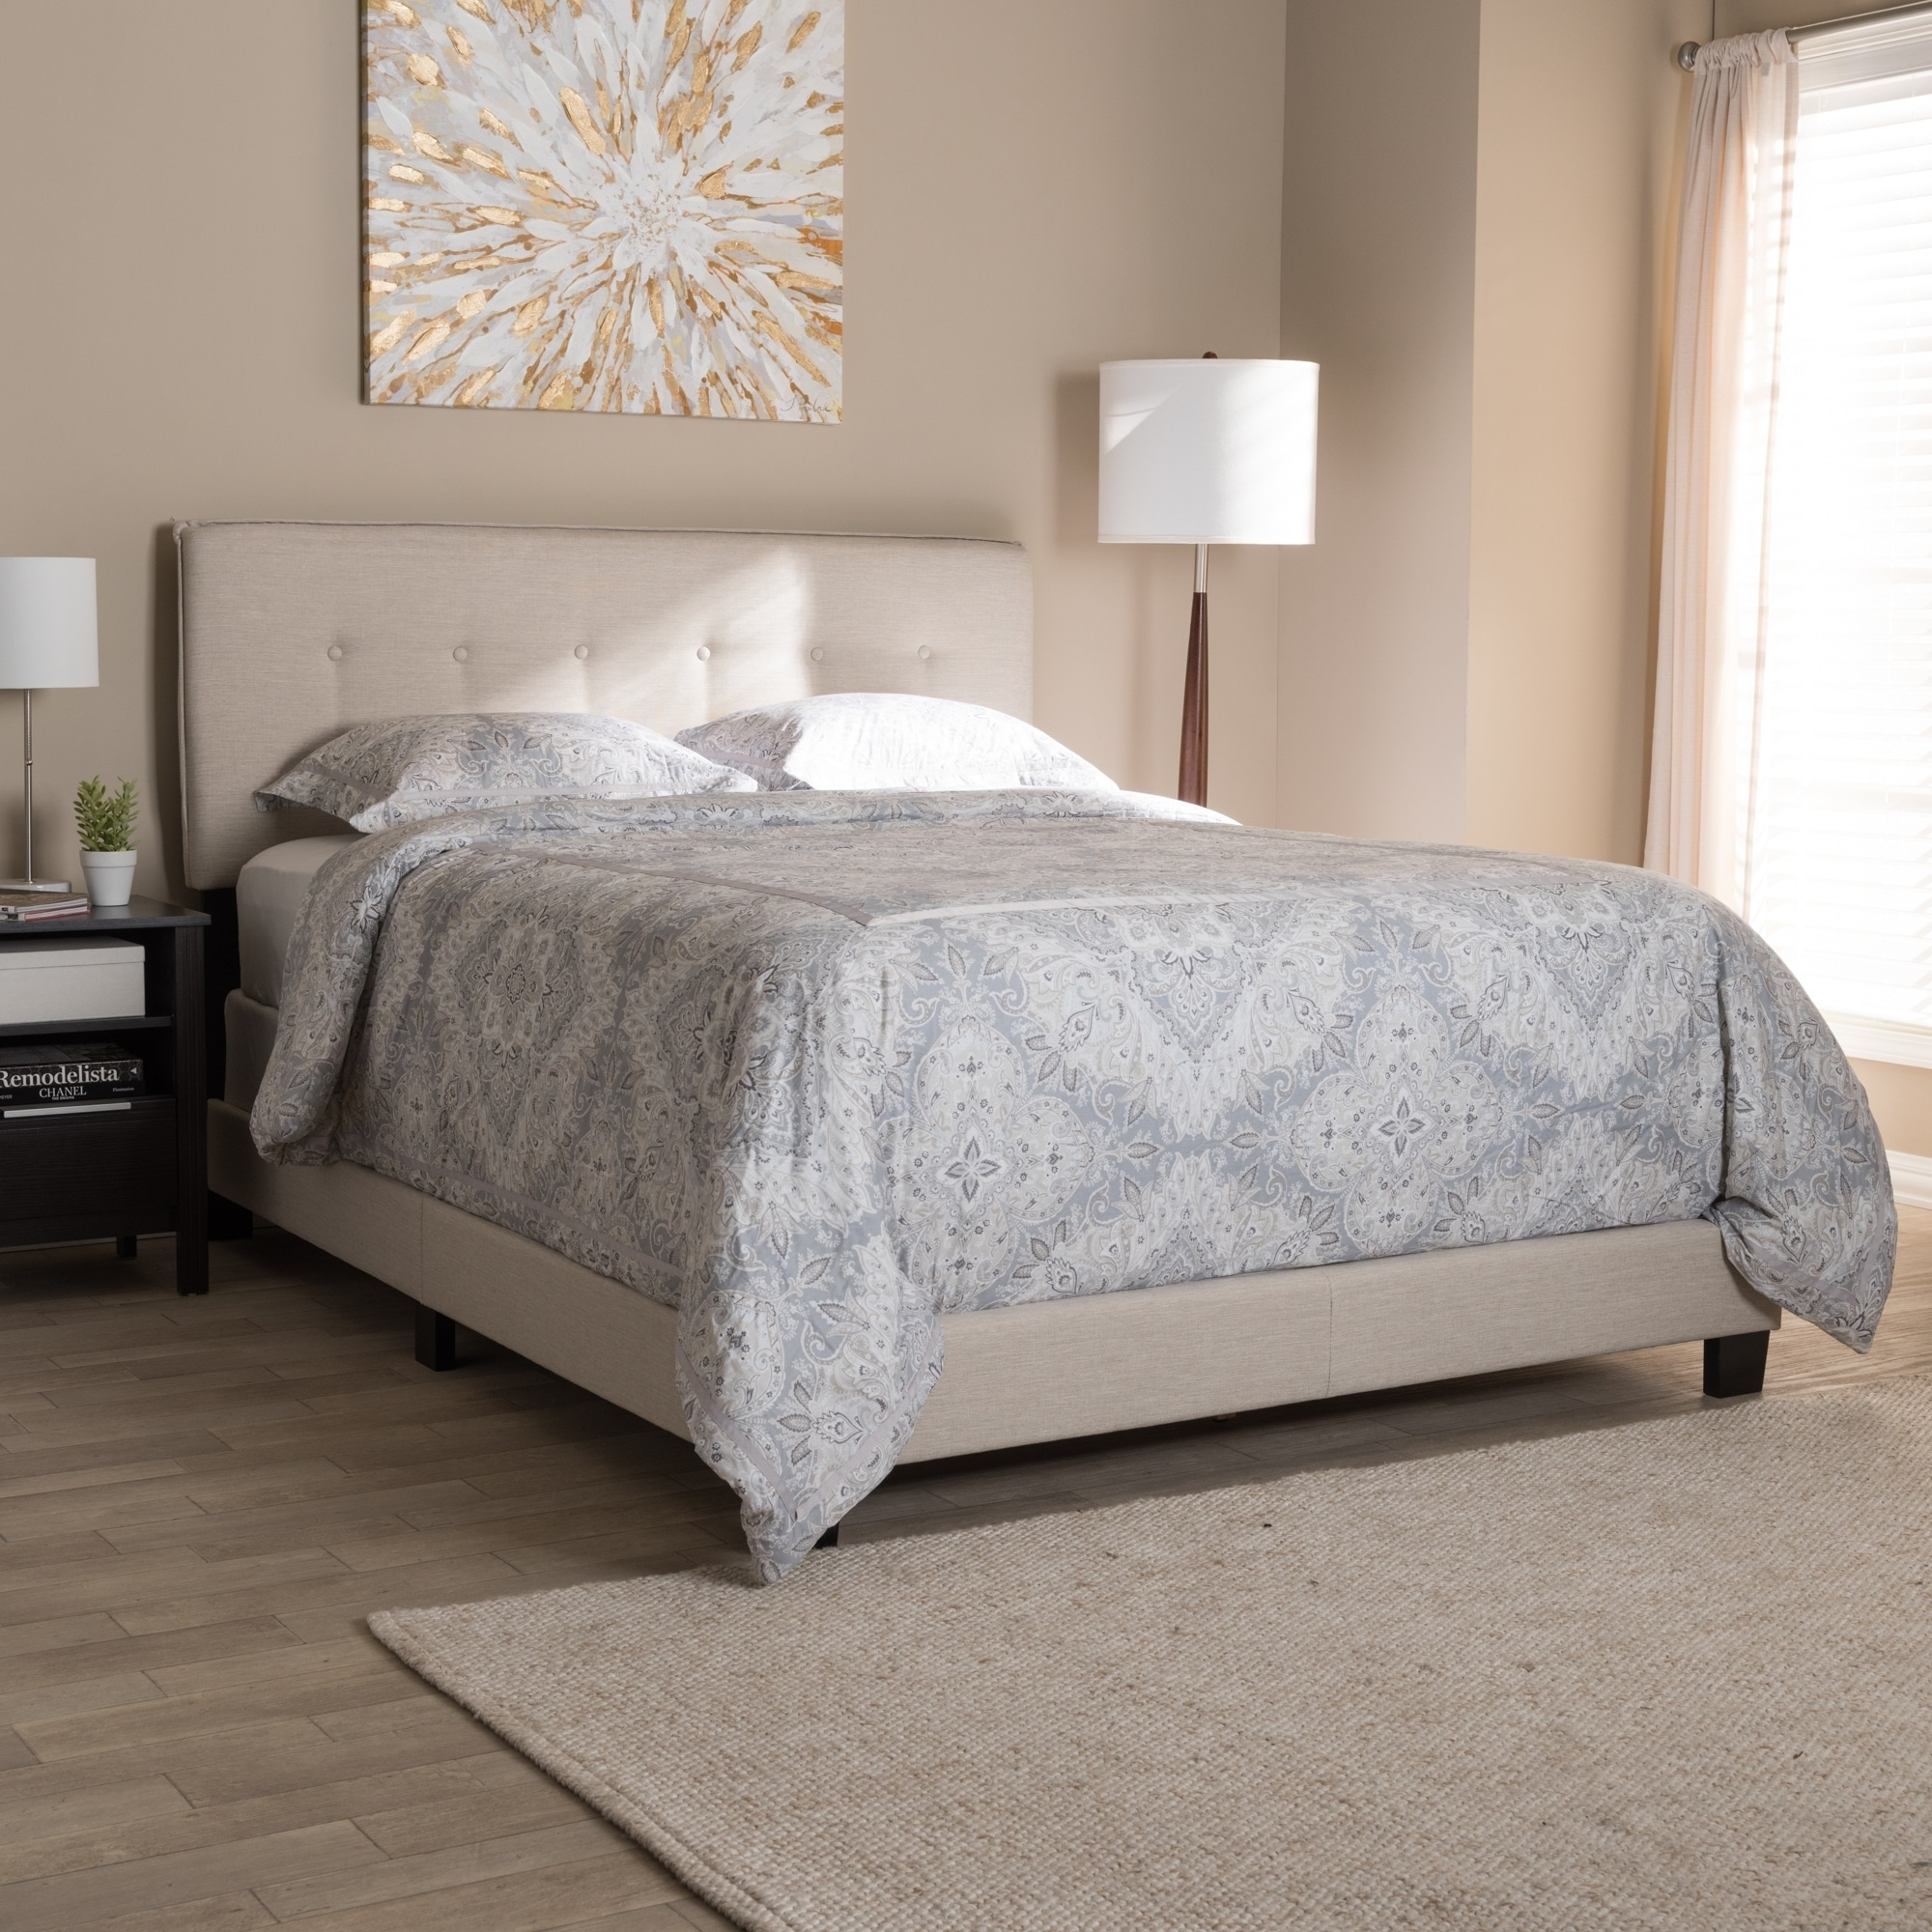 upholstered baxton by fabric contemporary studio today product bed home shipping free sterling garden creek laurel overstock